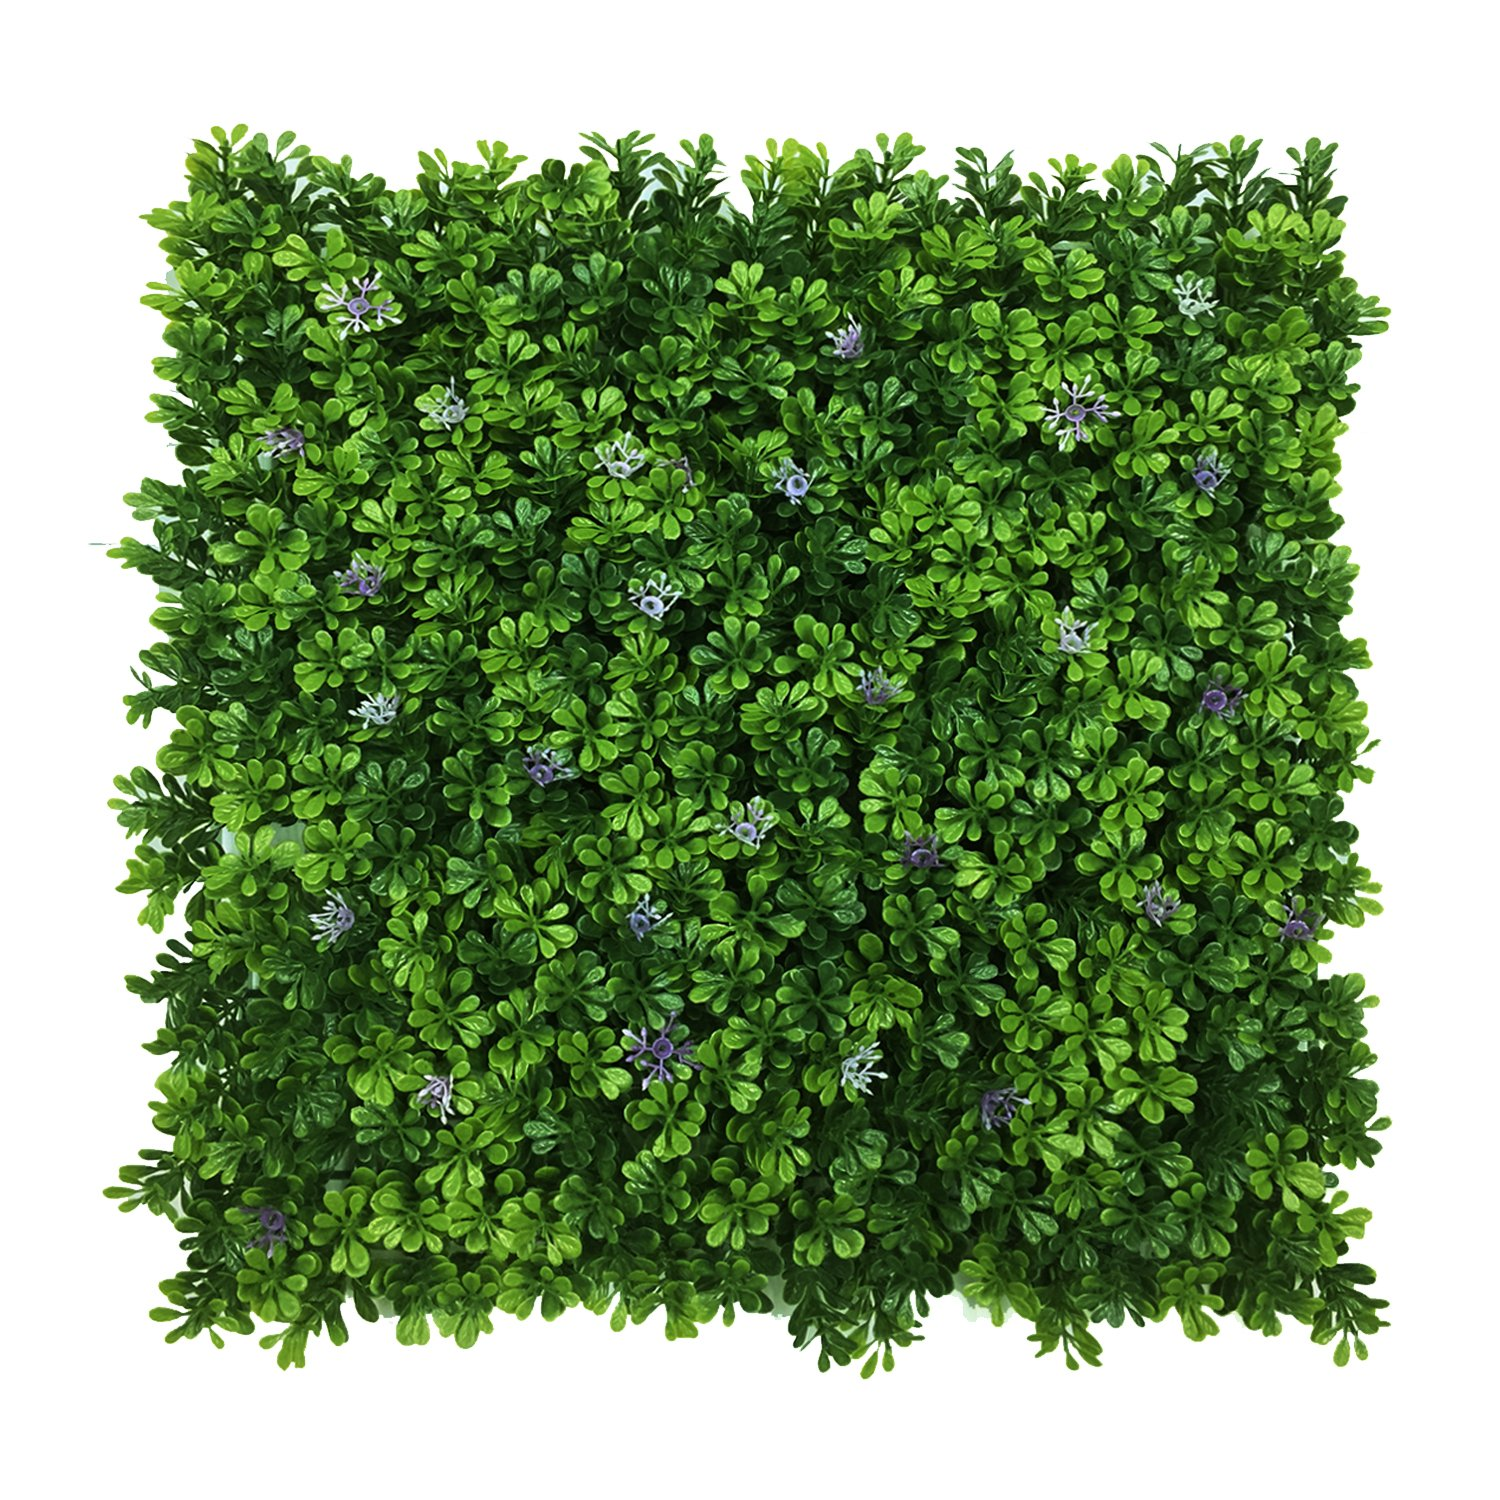 Artificial Boxwood Hedge Mats with Flowers Decoration/ Faux Greenery Panels for Indoor Plants Wall or Outdoor Fence 20''x 20'' Panels (Pack of 12) by BesameNature